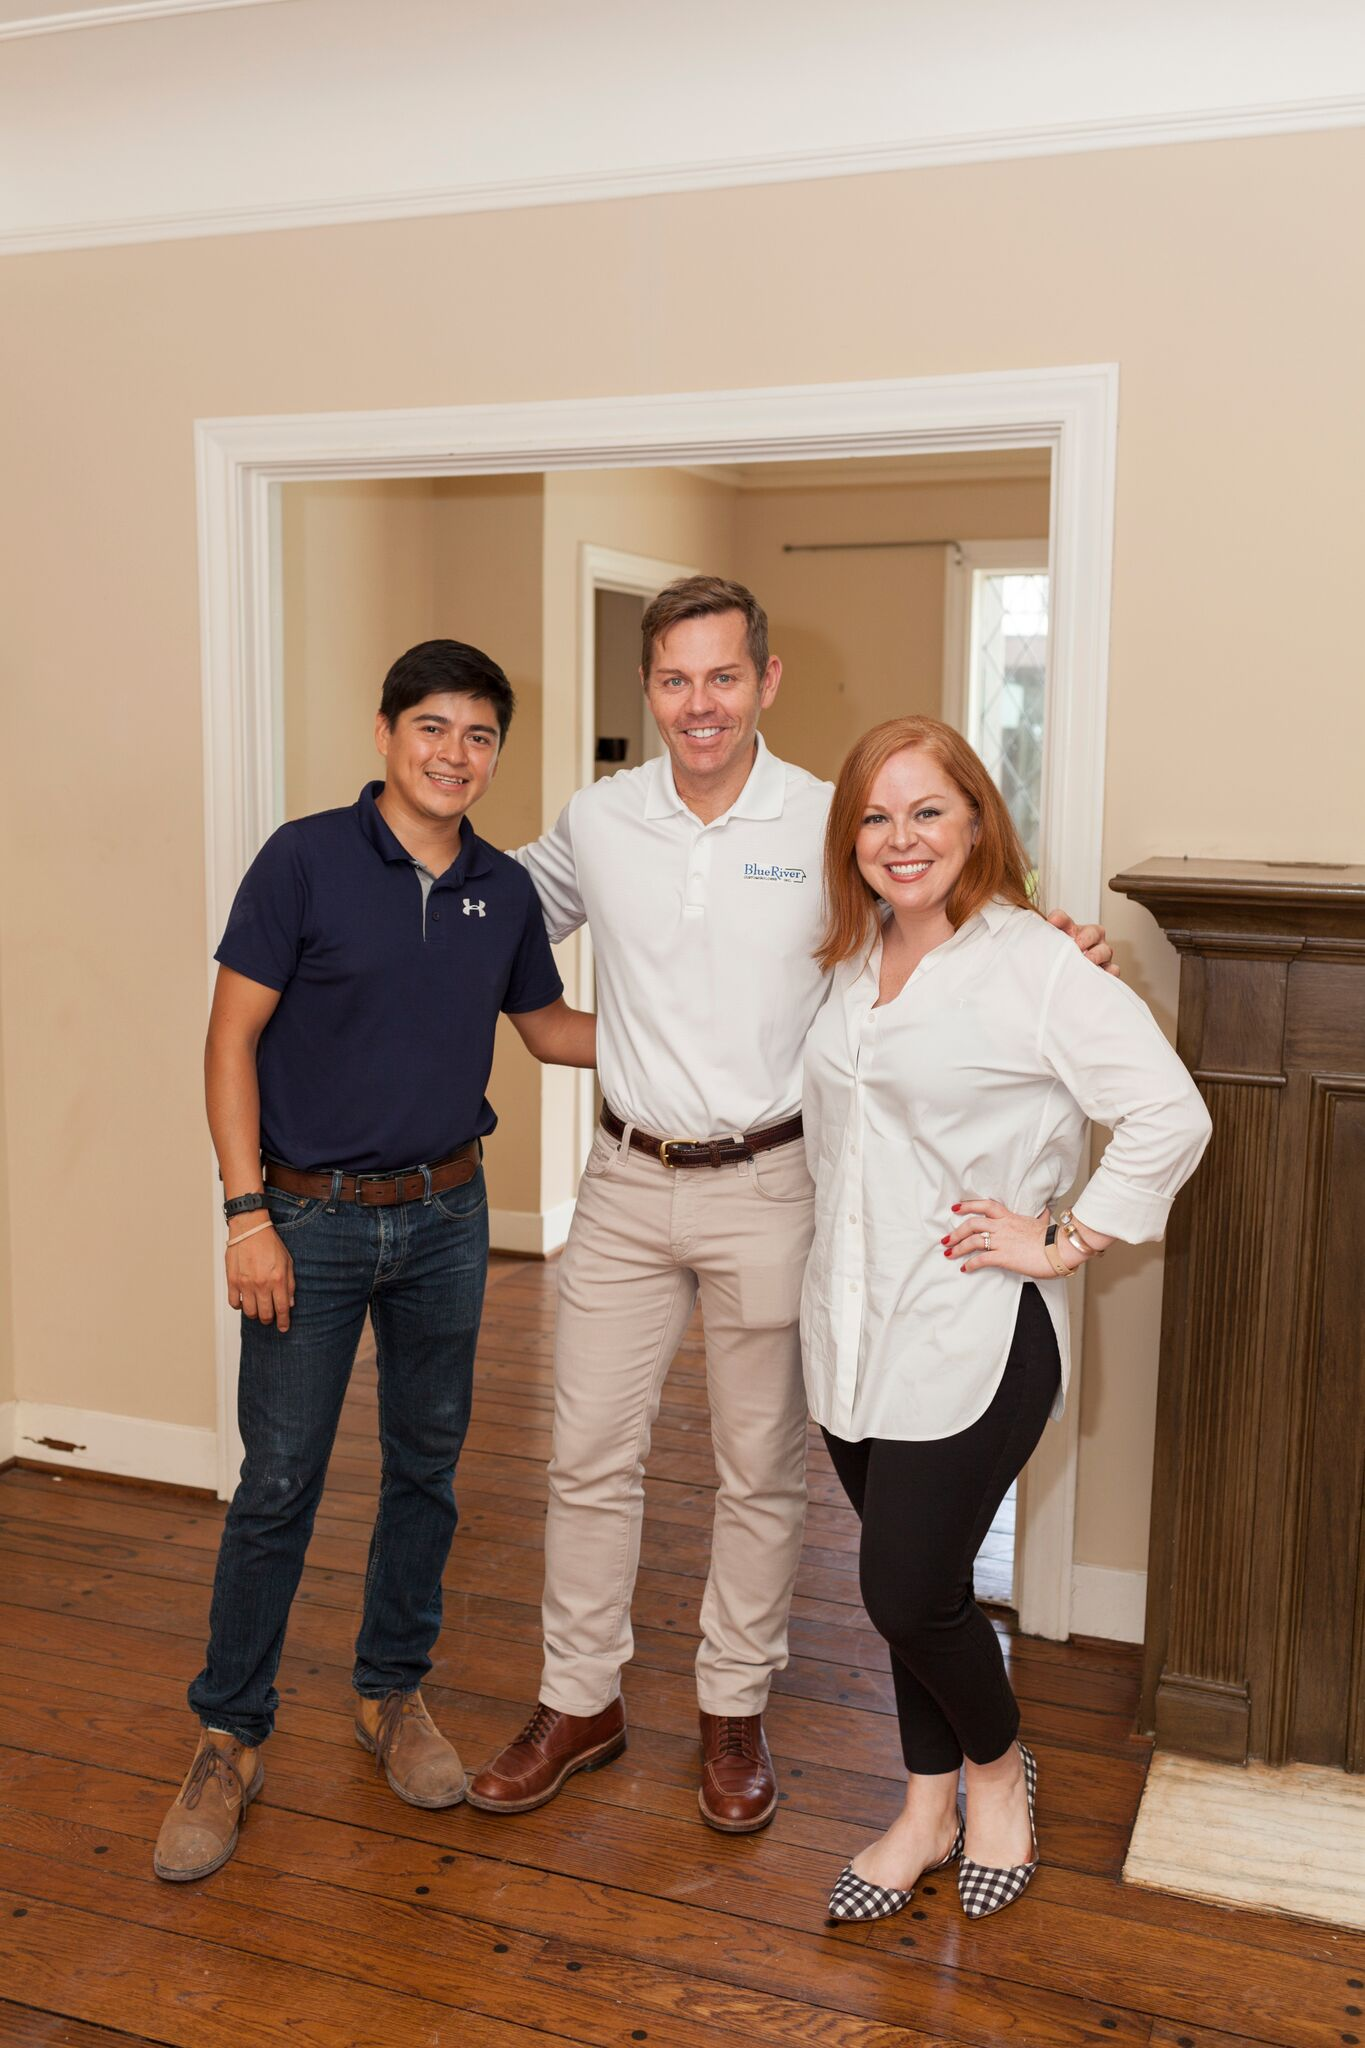 Renovation Experts - Tylor and Jose are making our renovation dreams come to life! They ensure each room is constructed according to our plans - from foundation to electrical and everything in between.Read the whole interview here!